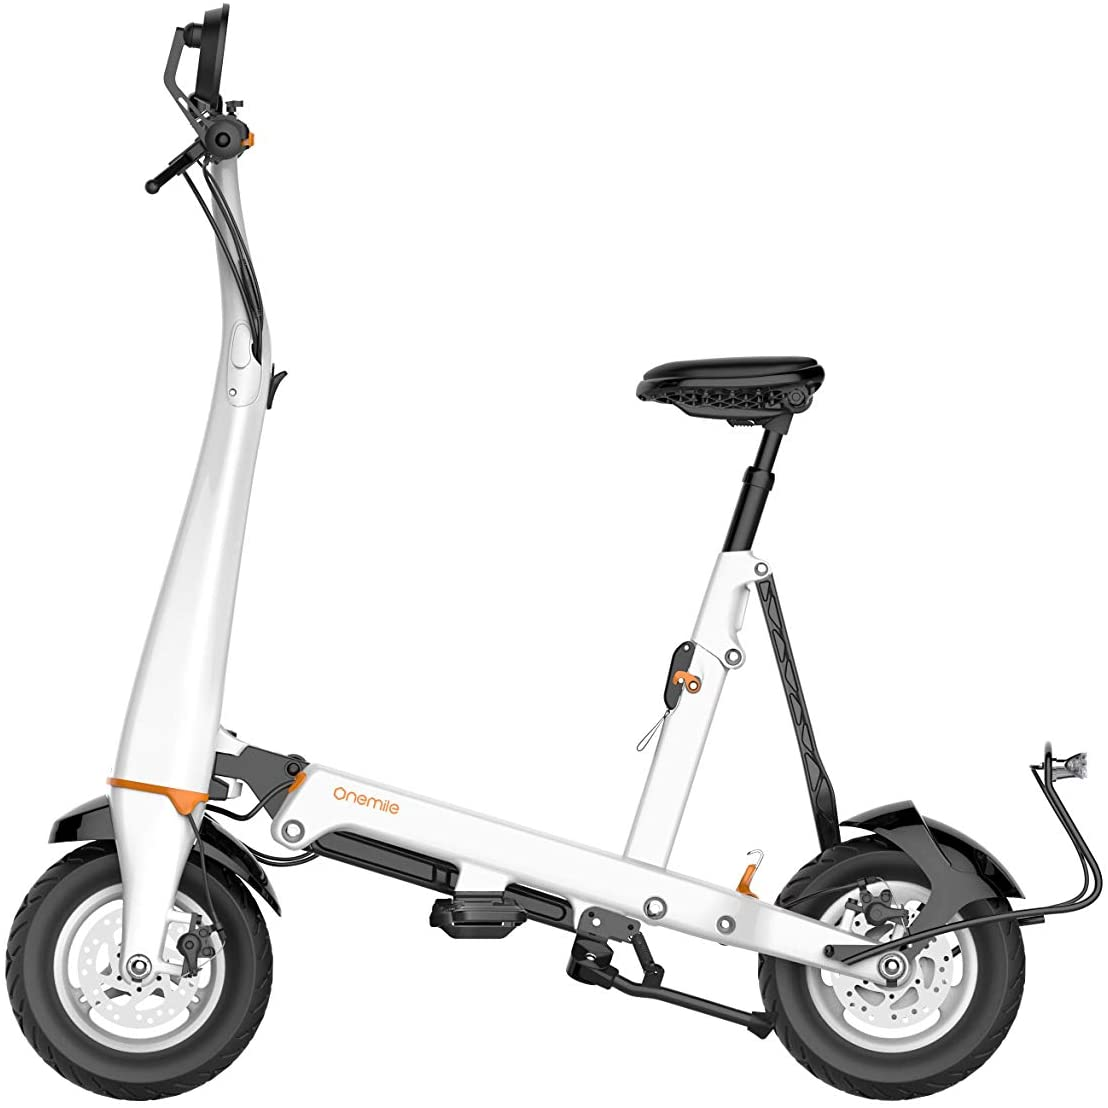 Trottinette électrique Halo City immatriculé EEC de OneMile - E-Scooter